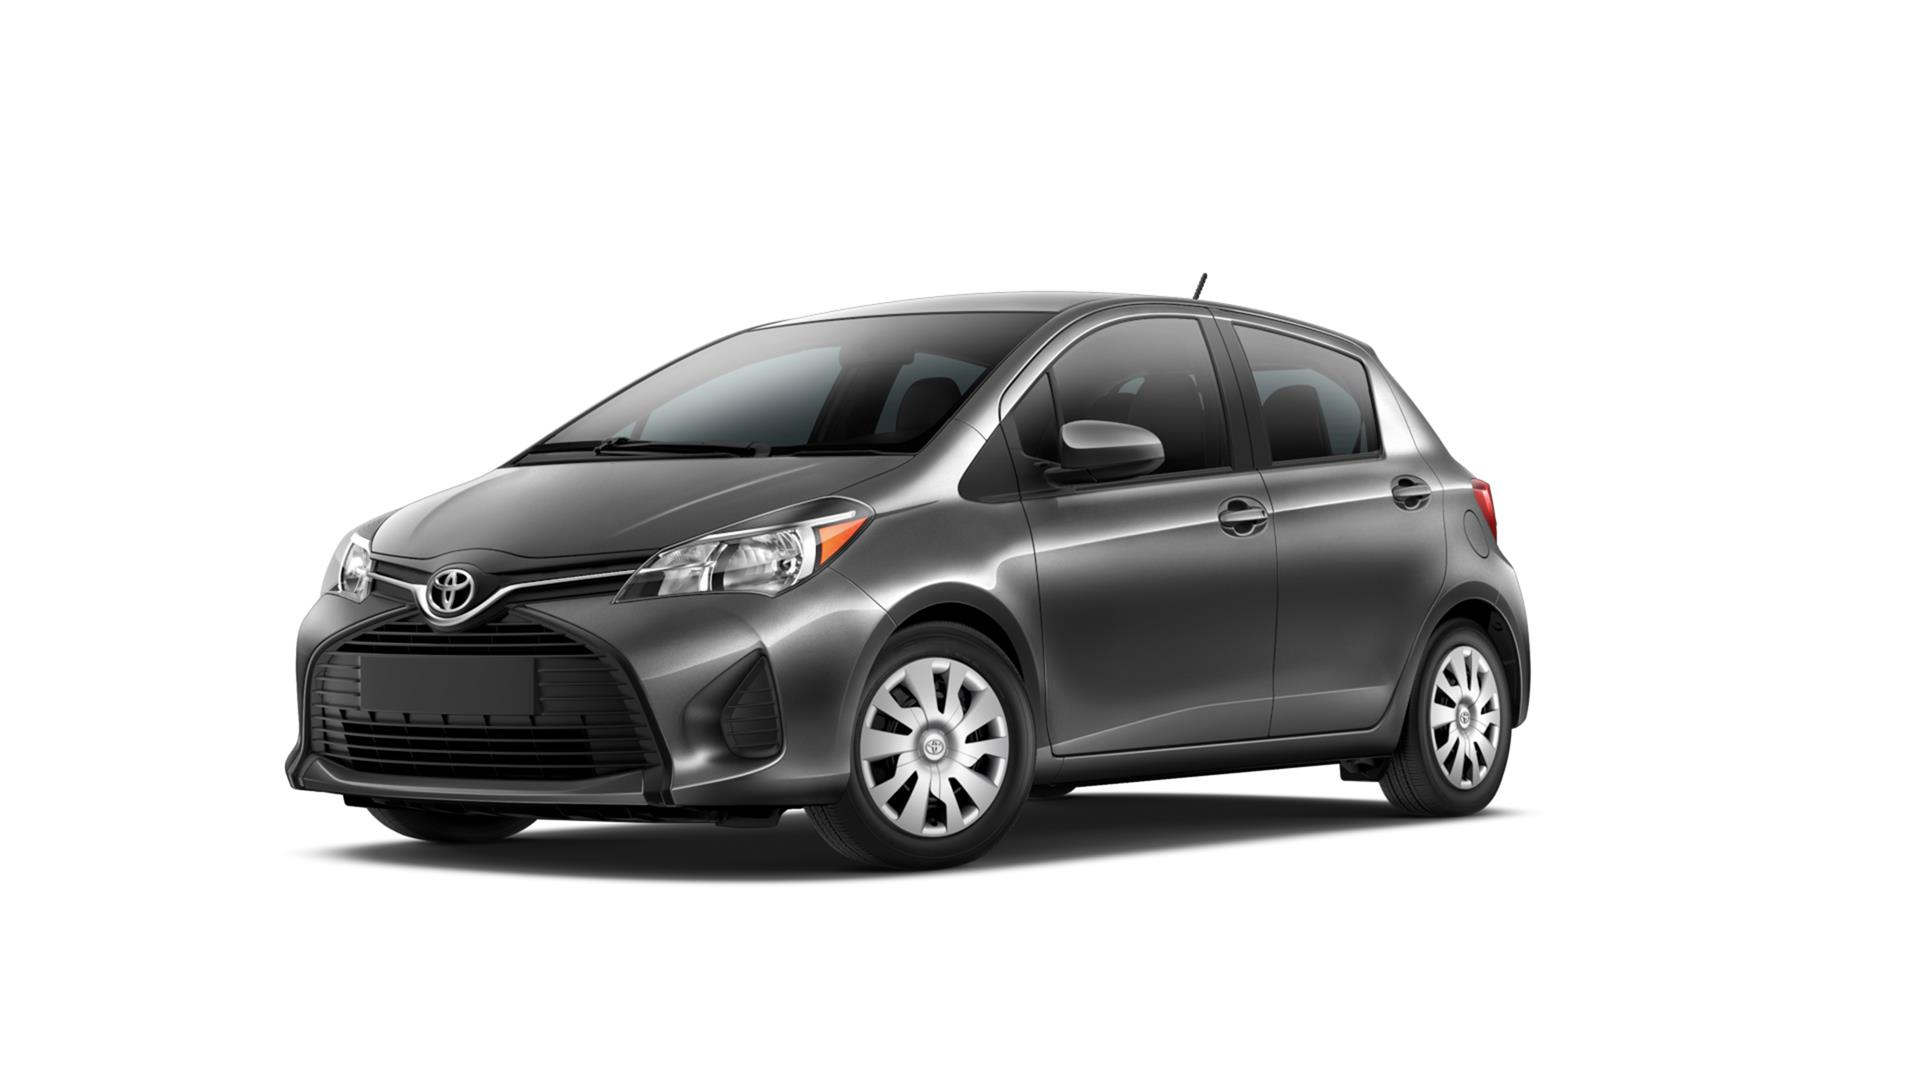 2016 toyota yaris. Black Bedroom Furniture Sets. Home Design Ideas